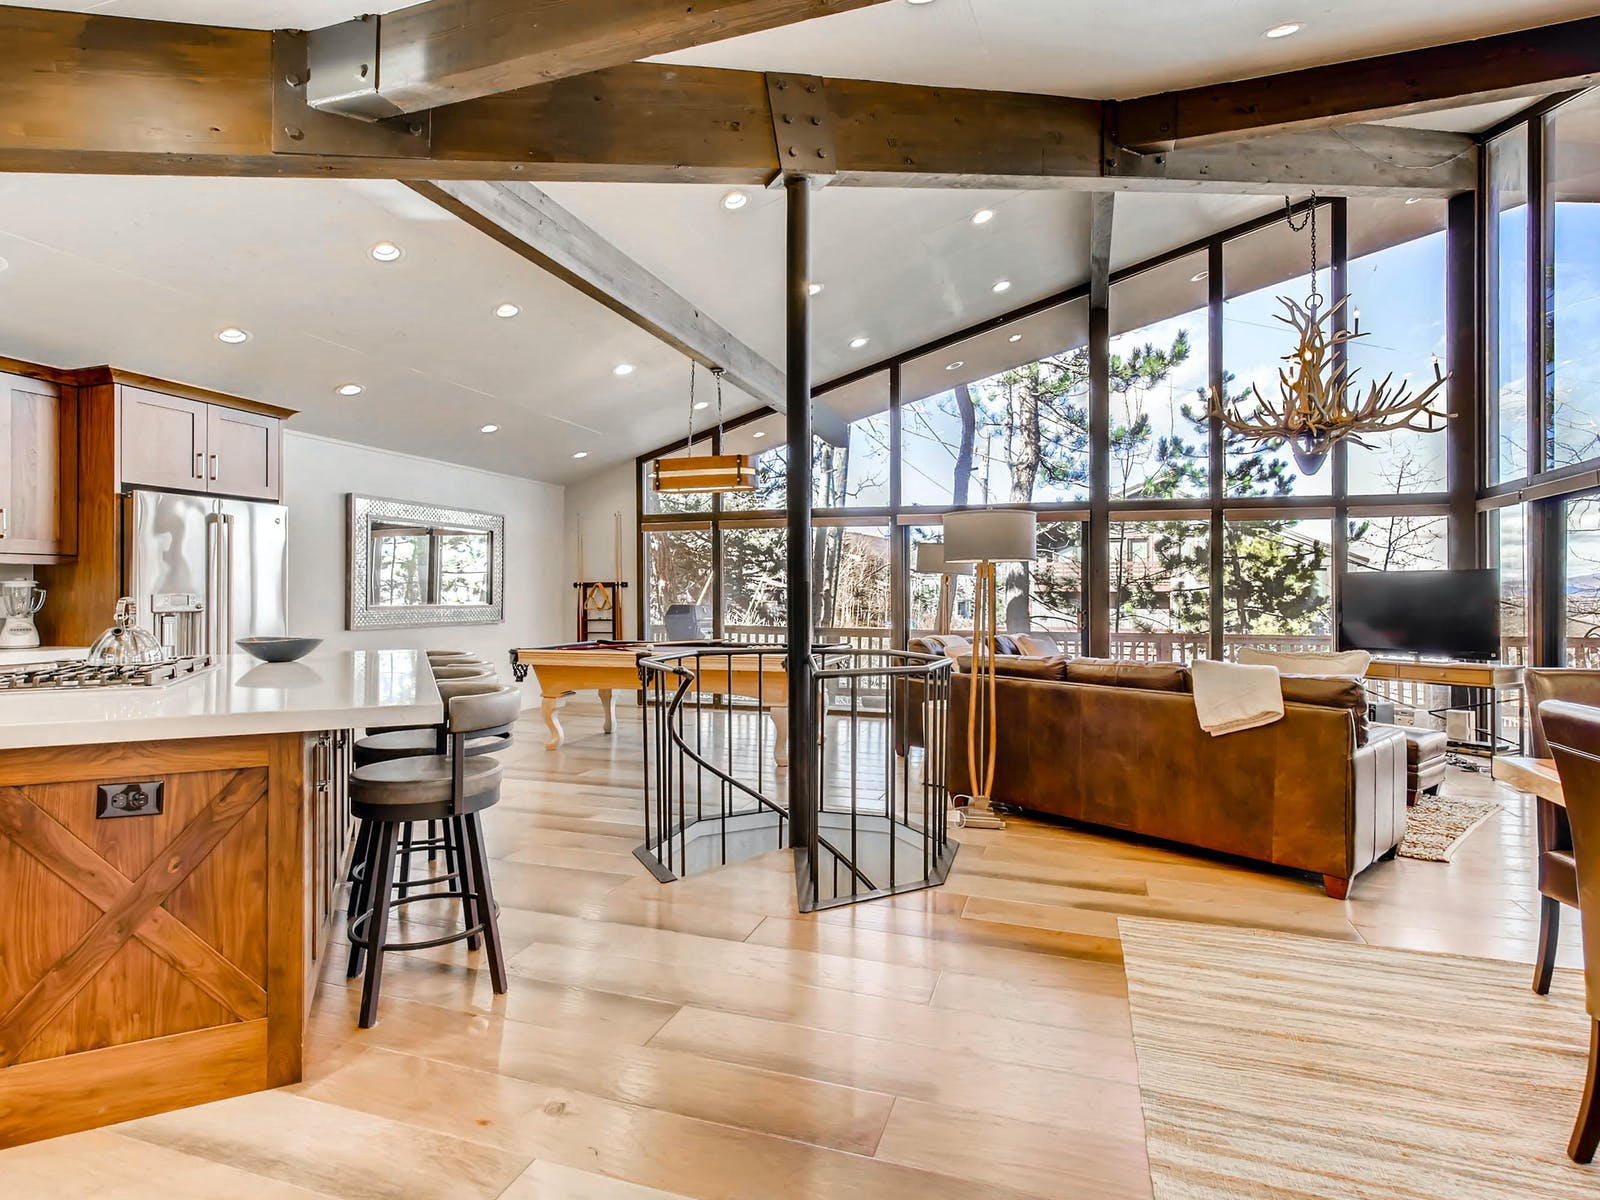 large open living space with spiral stairs and floor-to-ceiling windows of park city condo